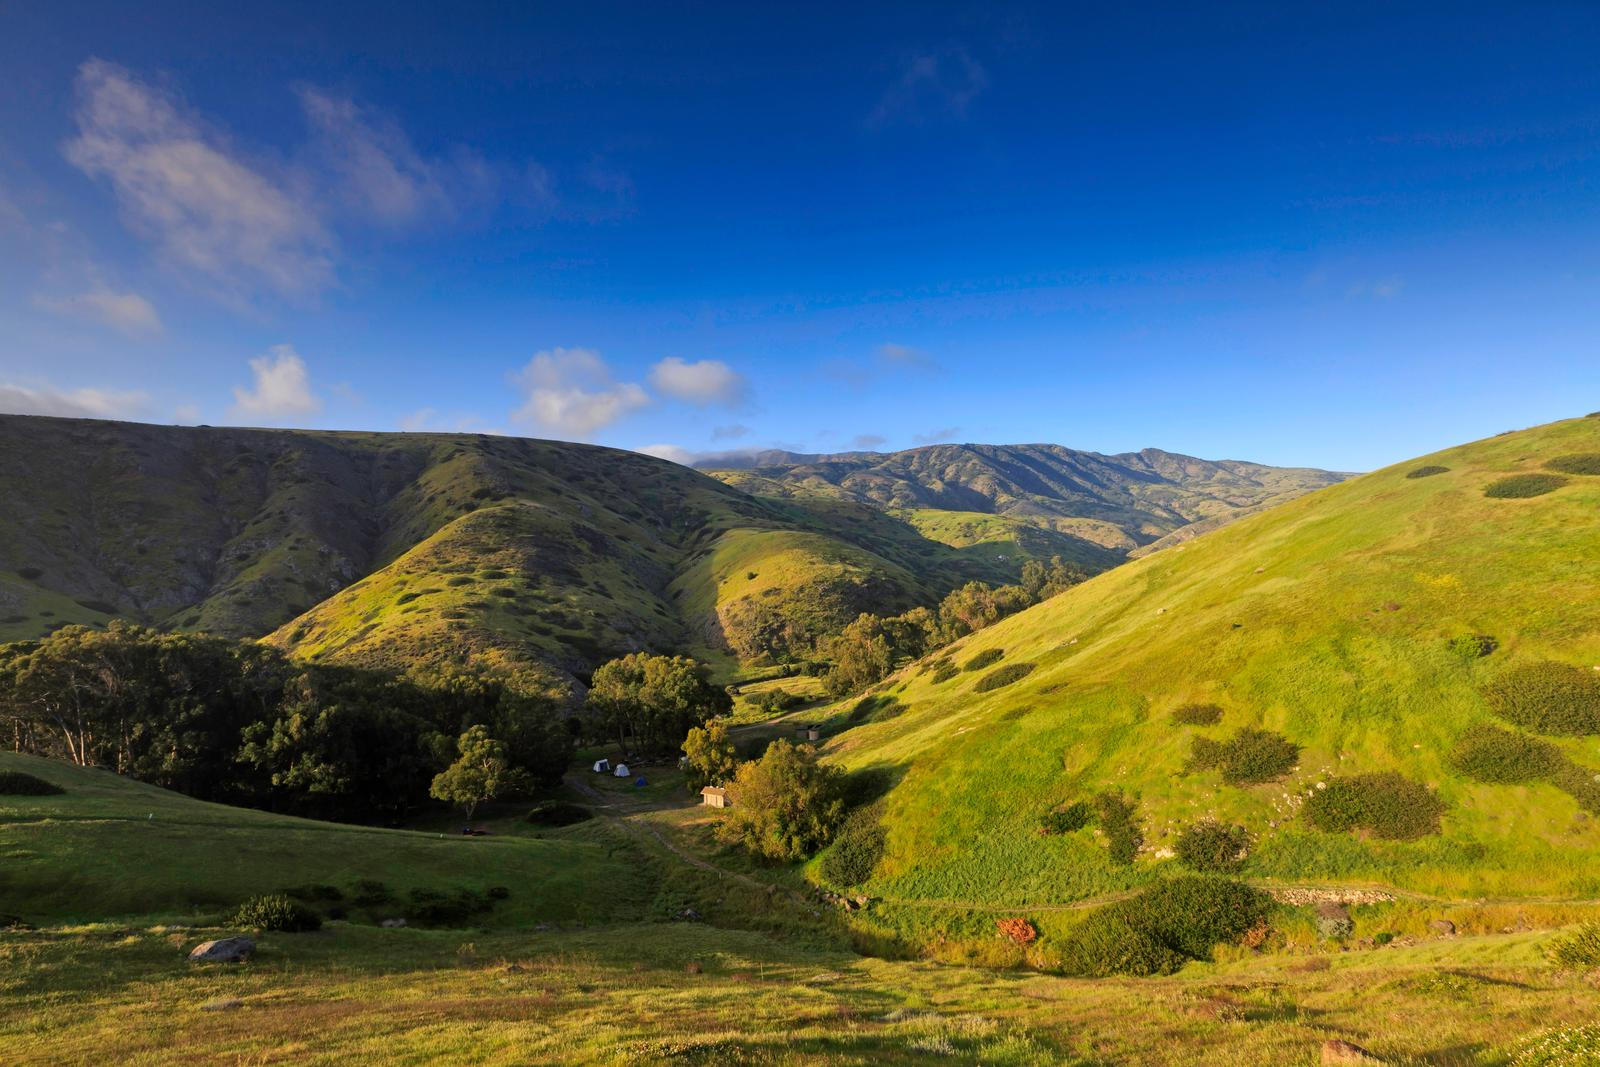 View of canyon nestled in low rolling, grass covered hills.Santa Cruz Island